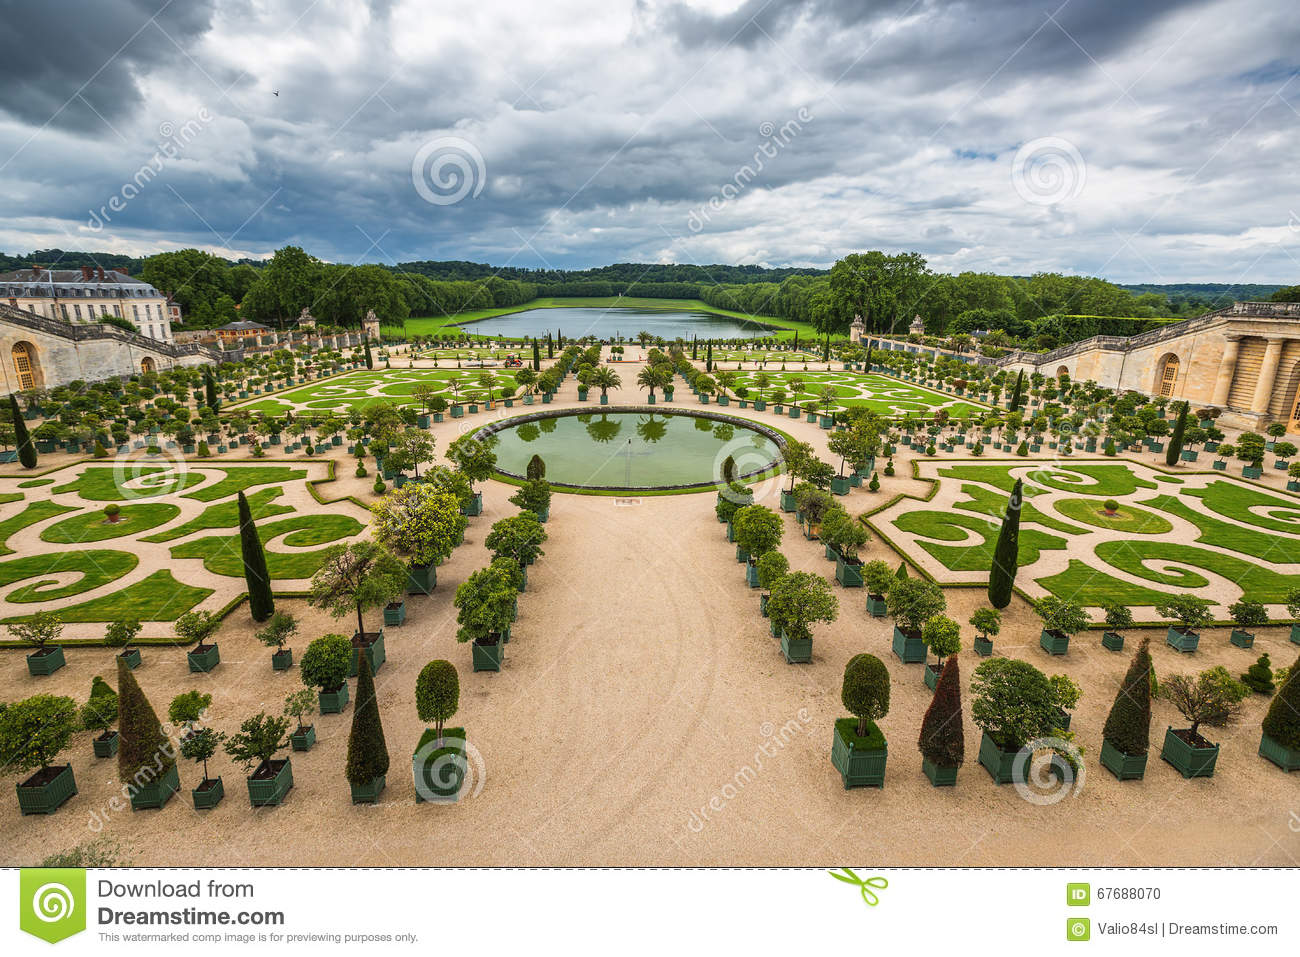 Beautiful garden in a famous palace versailles france for Garden design versailles